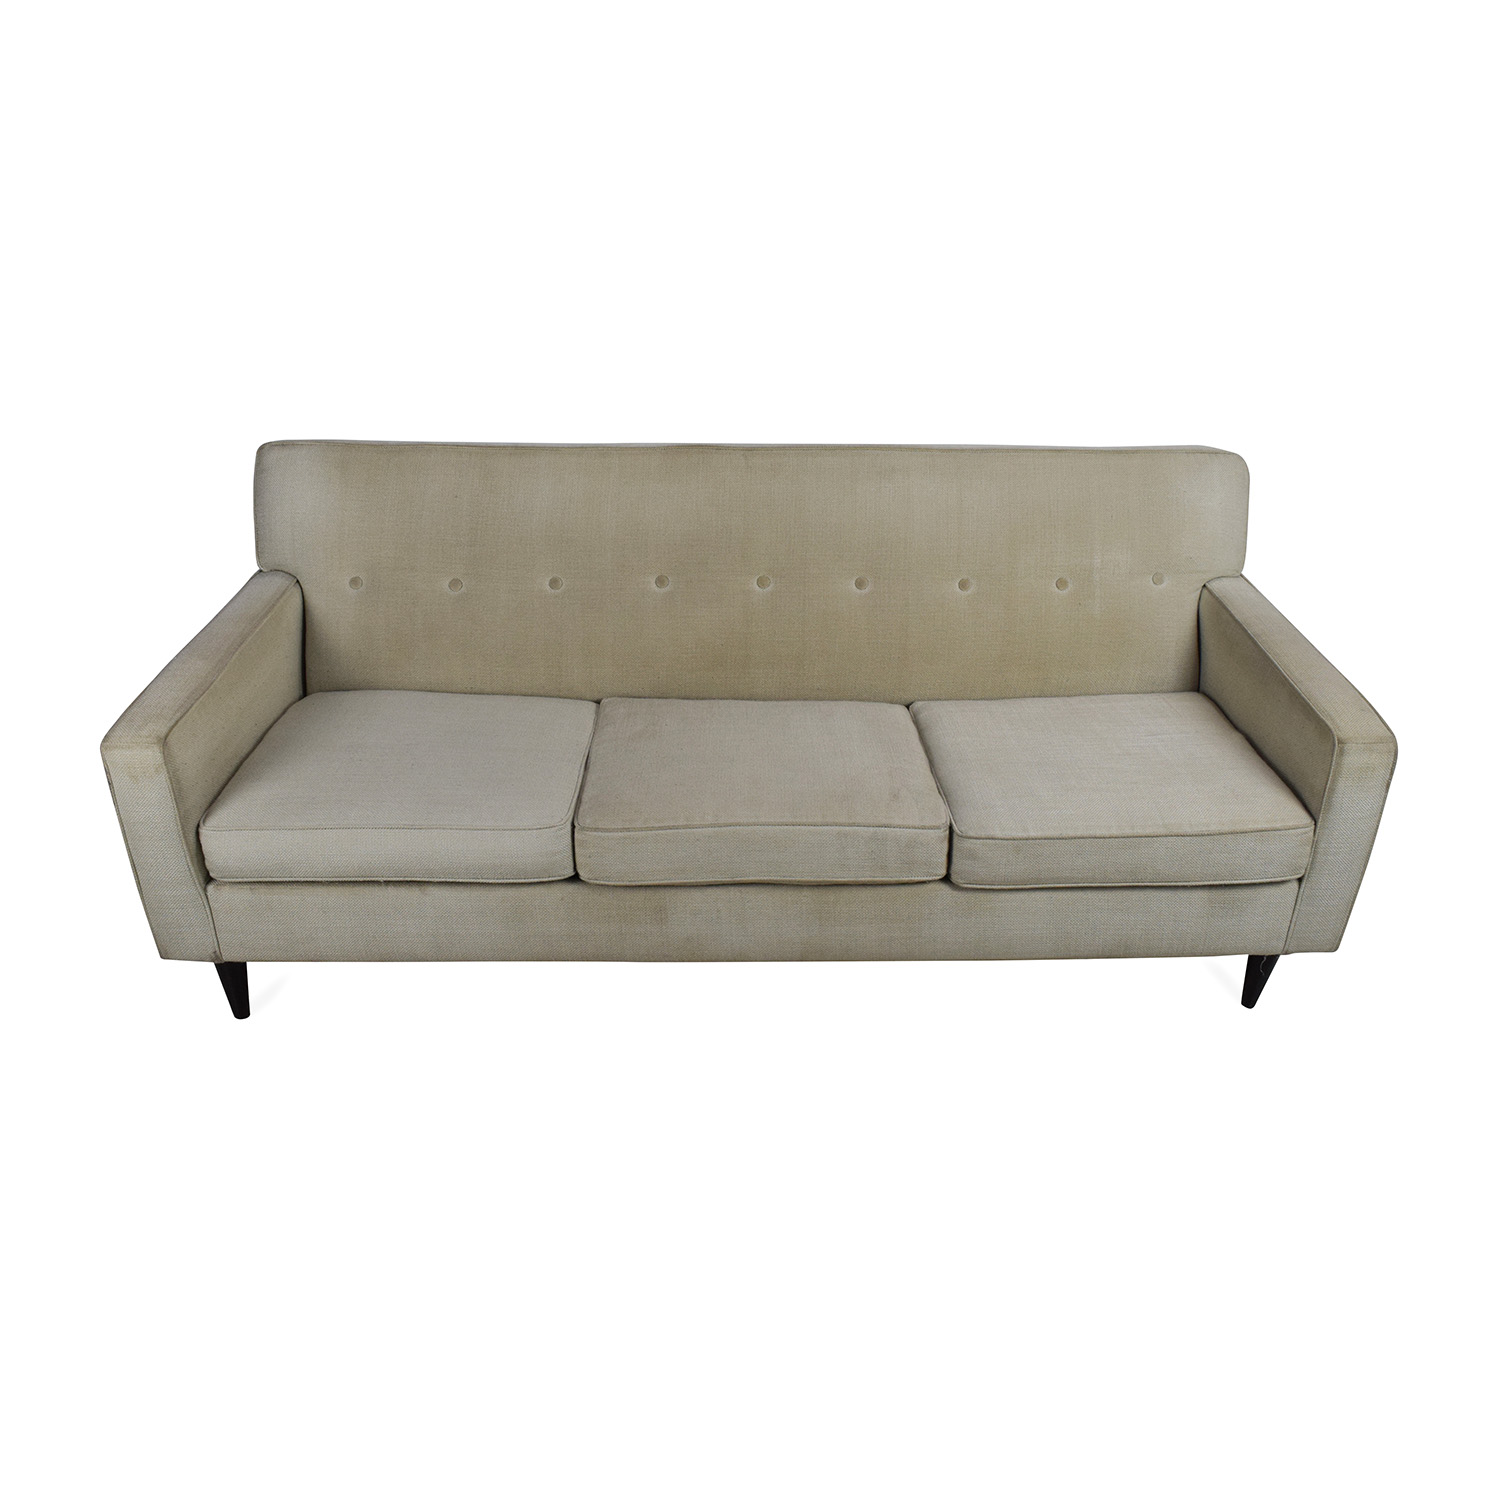 macy s furniture sofa tables make your own arm covers ainsley fabric only at